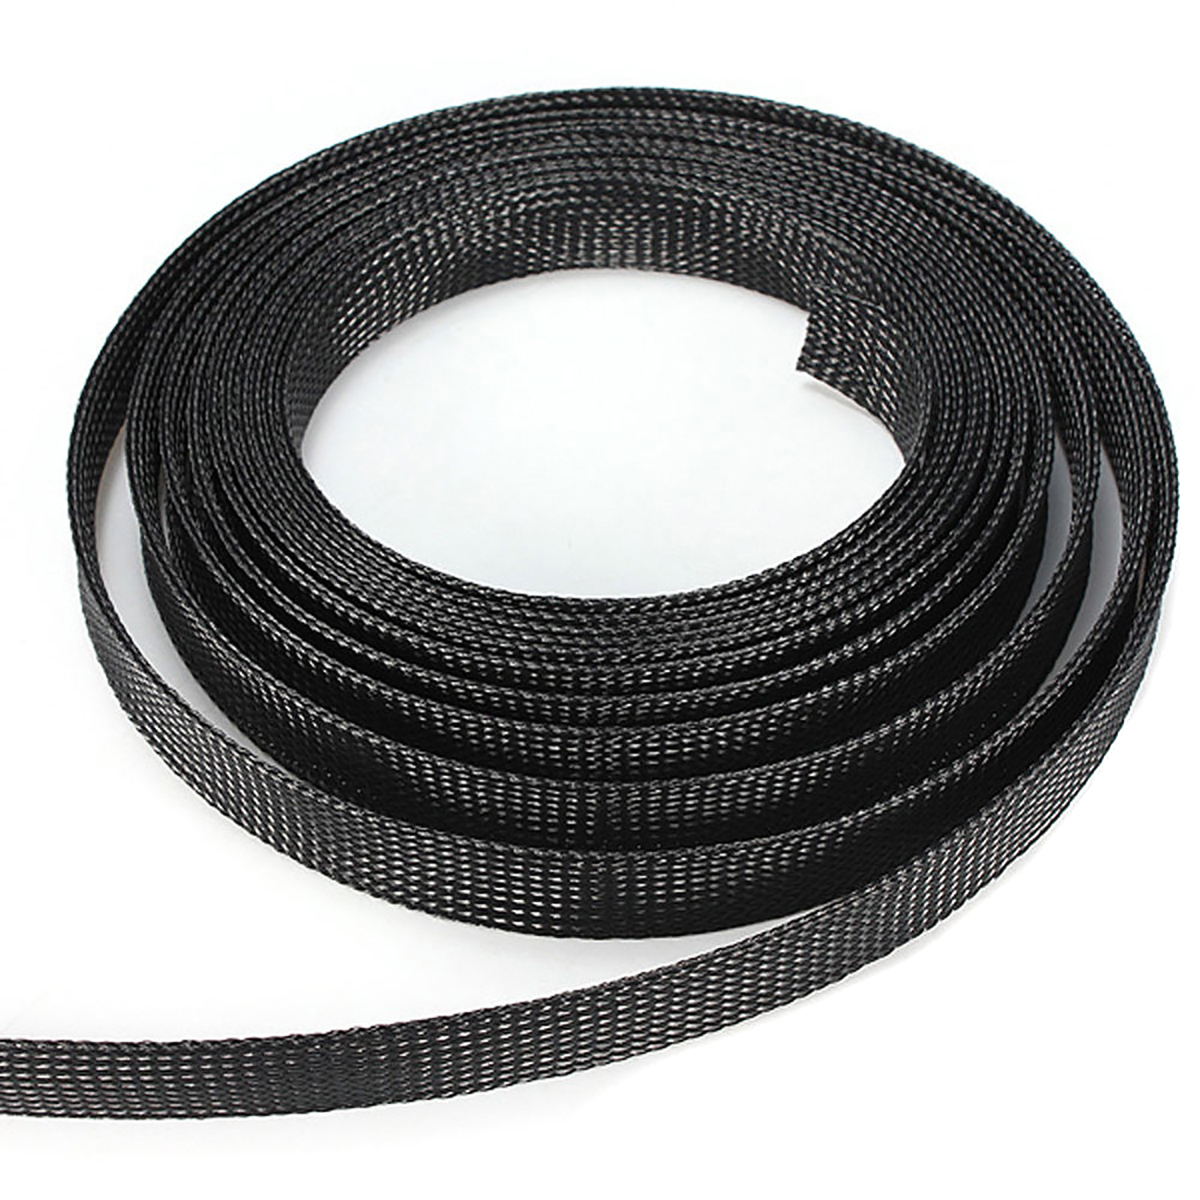 Black Braided Wire Sleeve 6/8/10/12/15mm Corrosion Resistance Protecting PET Nylon Braided Cable Sleeve 10m Length Mayitr